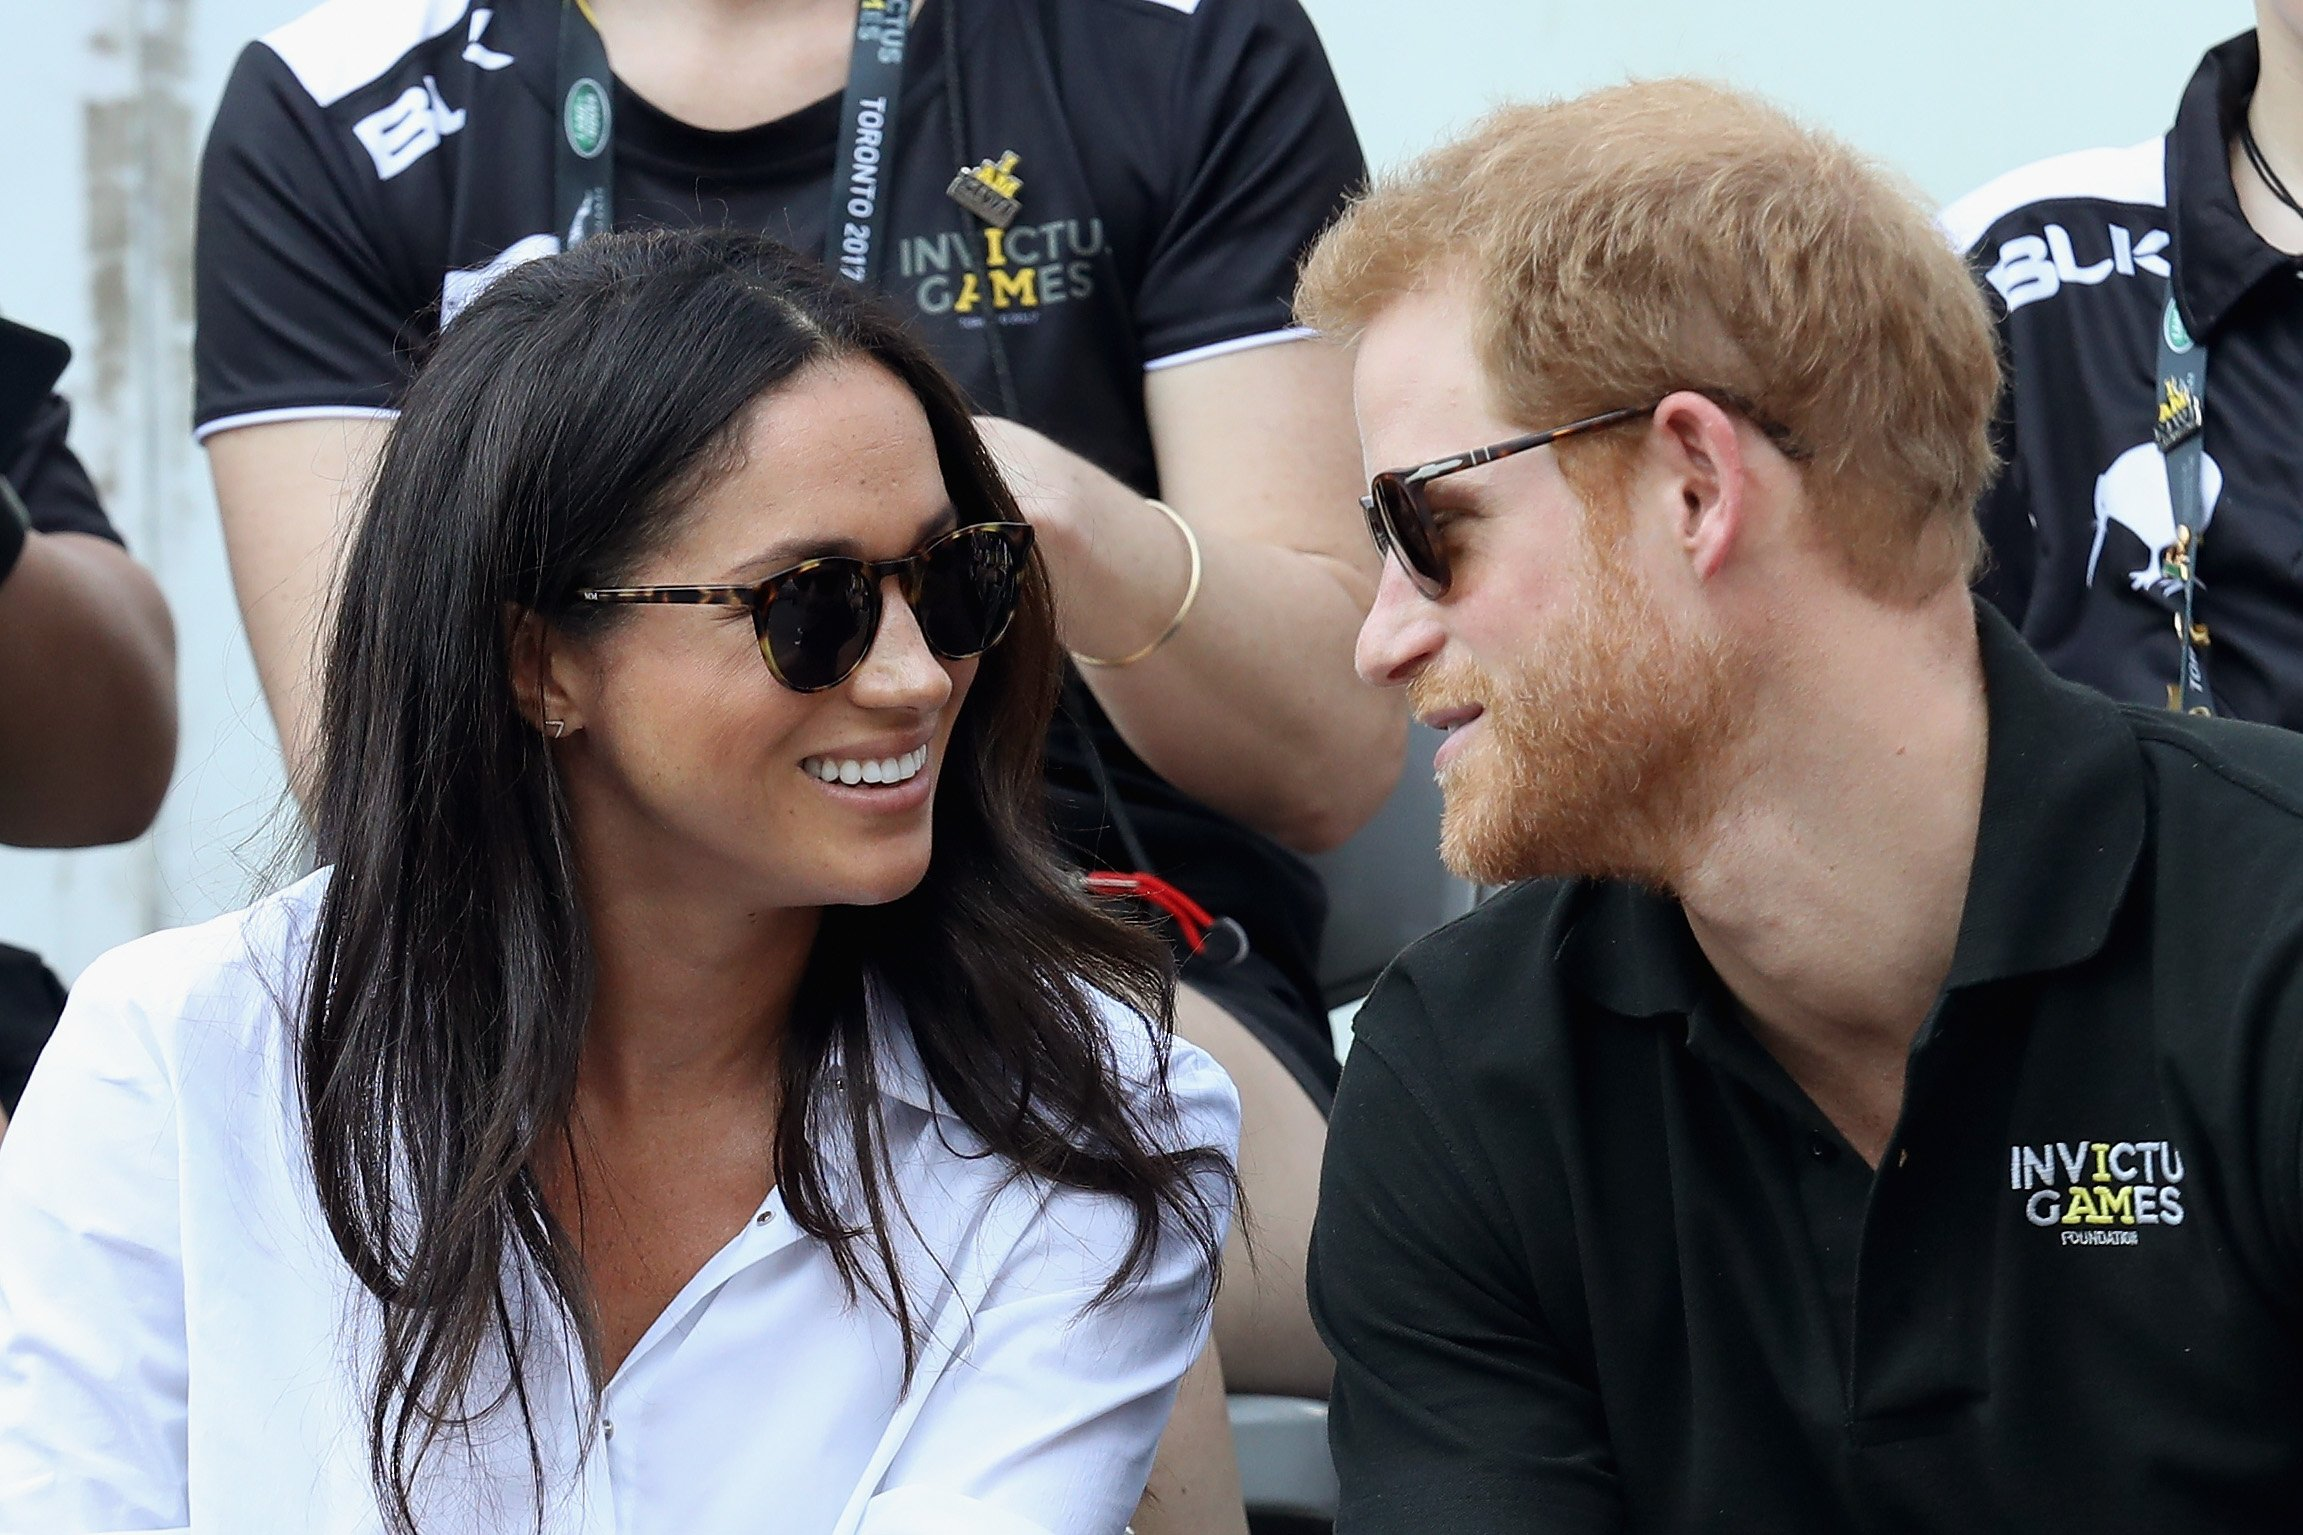 Prince Harry and Meghan Markle having a conversation while attending the 2017 Invictus Games in Toronto, Canada. | Photo: Getty Images